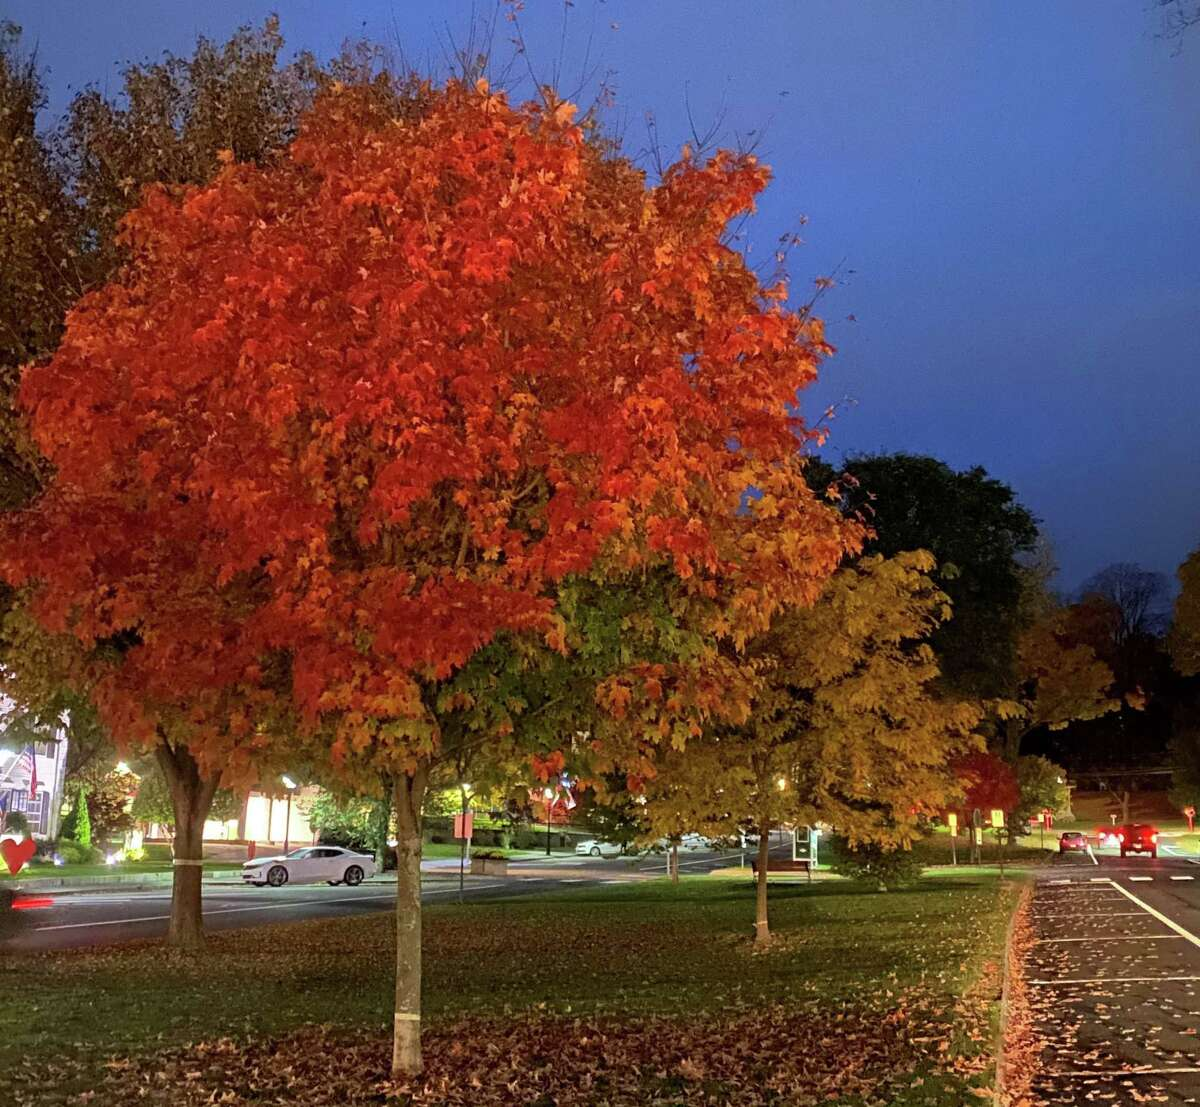 During fall, nature gets painted with warm hues of red, yellow, and brown. Different types of trees have evolved differently shaped leaves to help give them subtle advantages over one another.